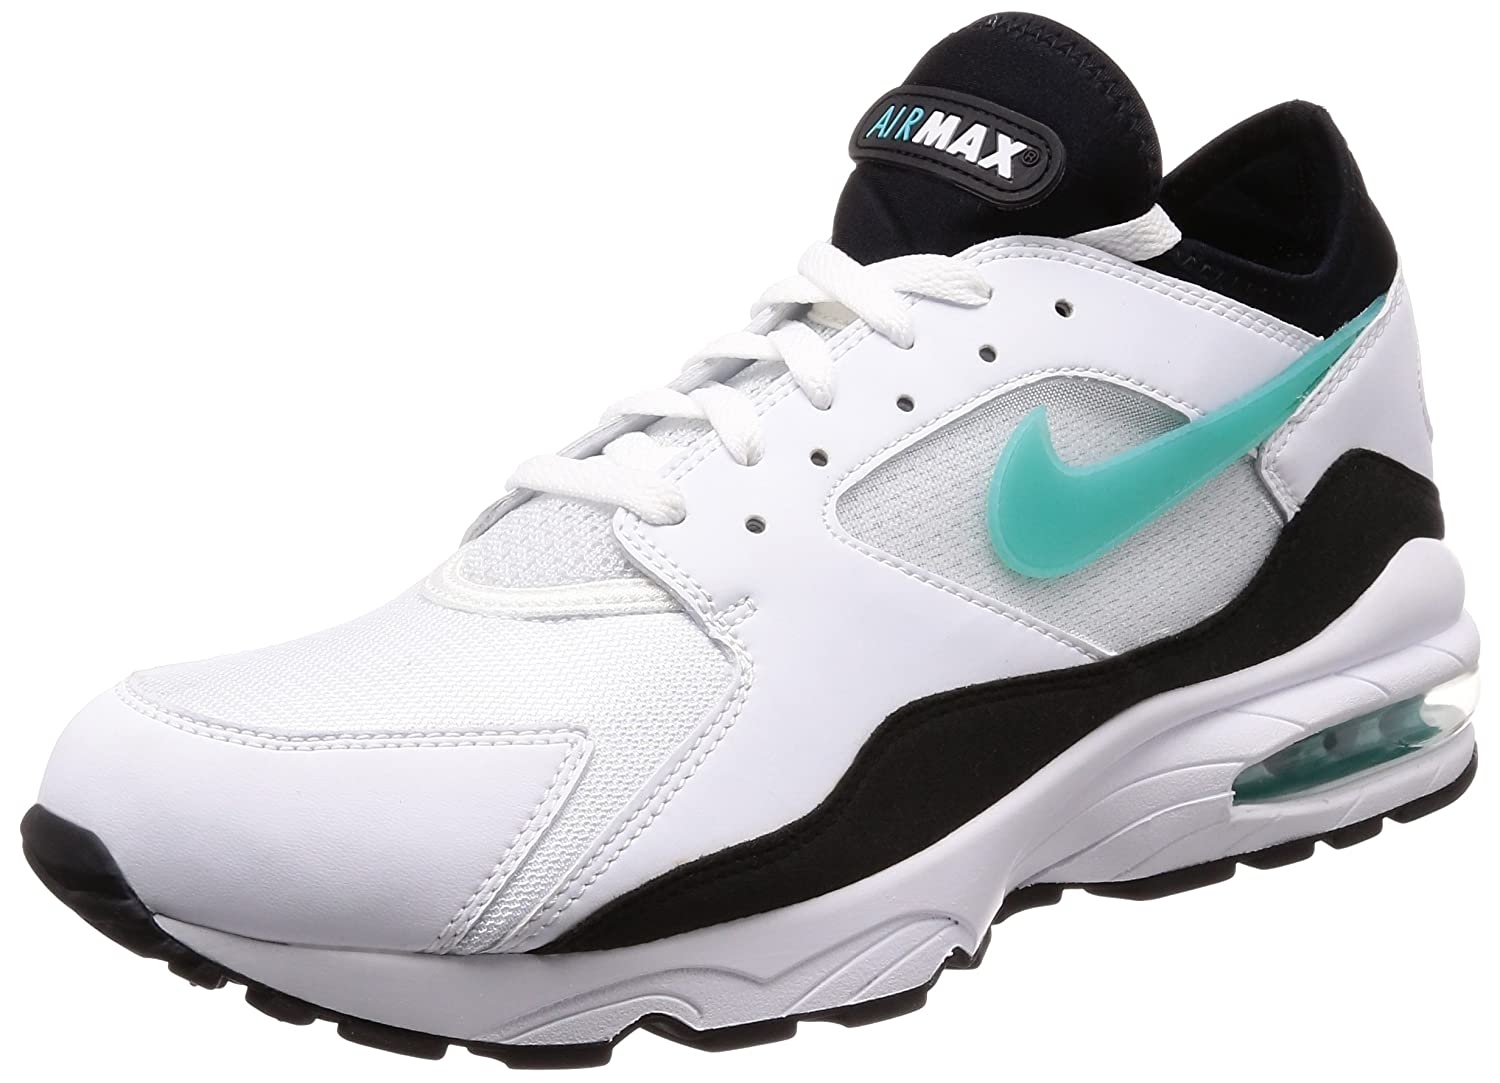 a9fb922eda Amazon.com | NIKE AIR Max 93 'Dusty Cactus' - 306551-107 - Size - 11 | Road  Running